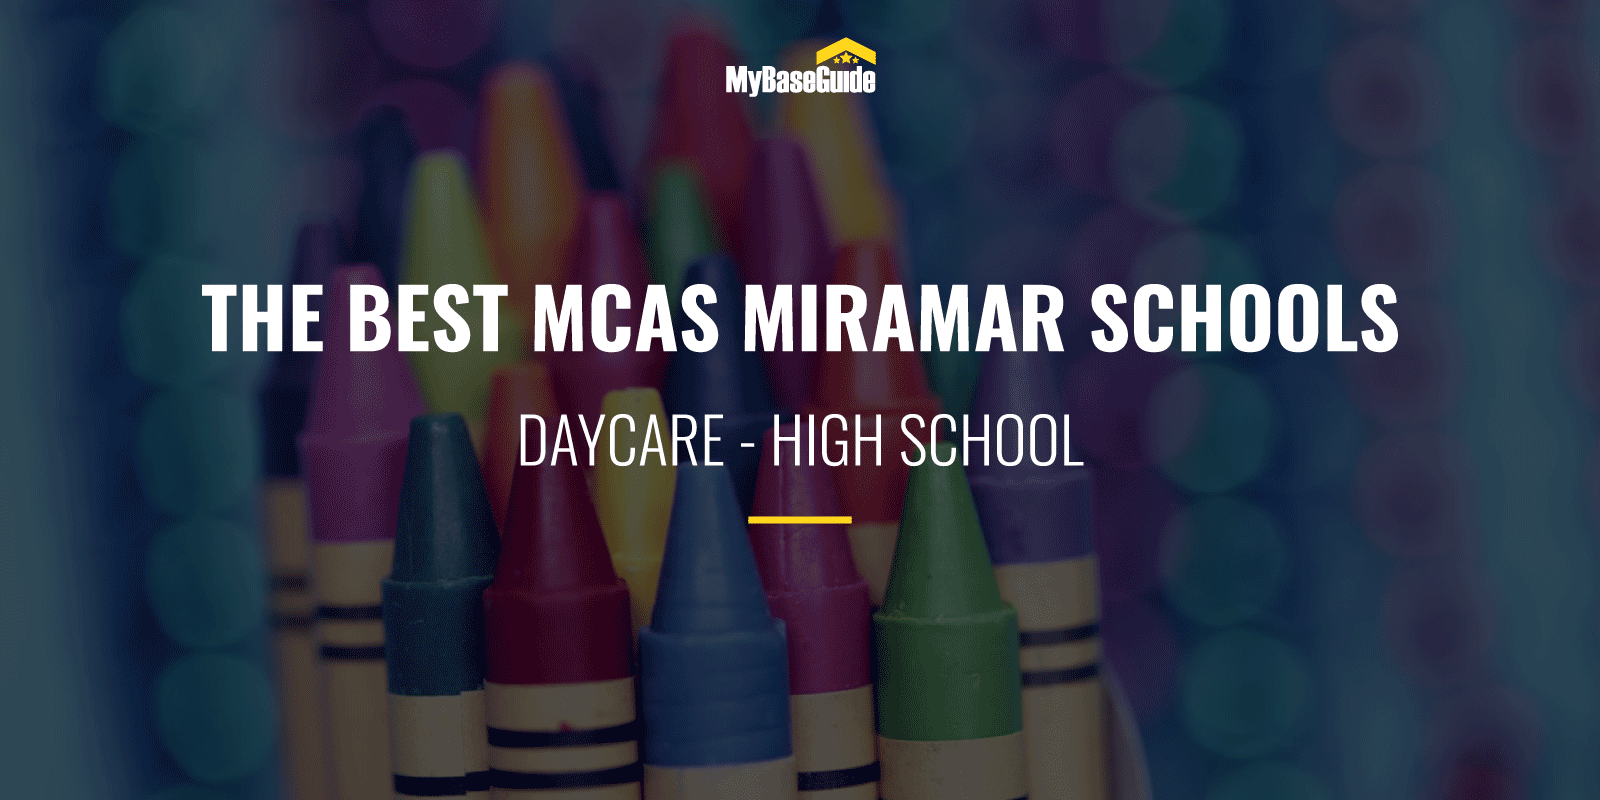 The Best MCAS Miramar Schools: Daycare - High School